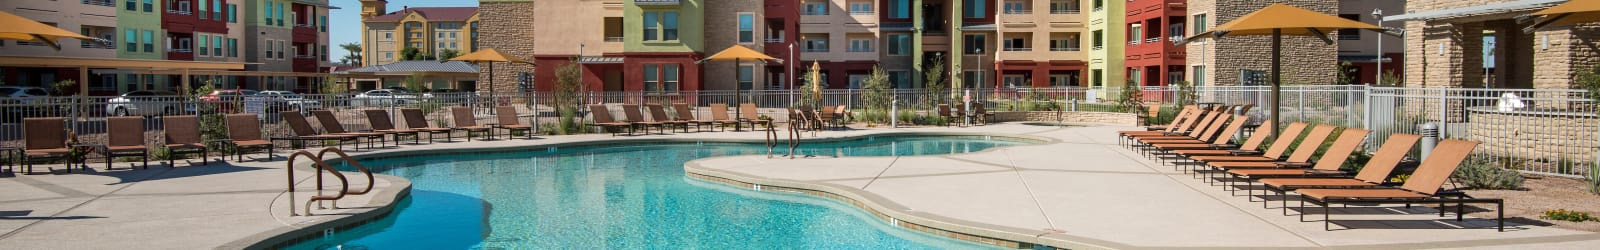 Contact us at Southern Avenue Villas in Mesa, Arizona